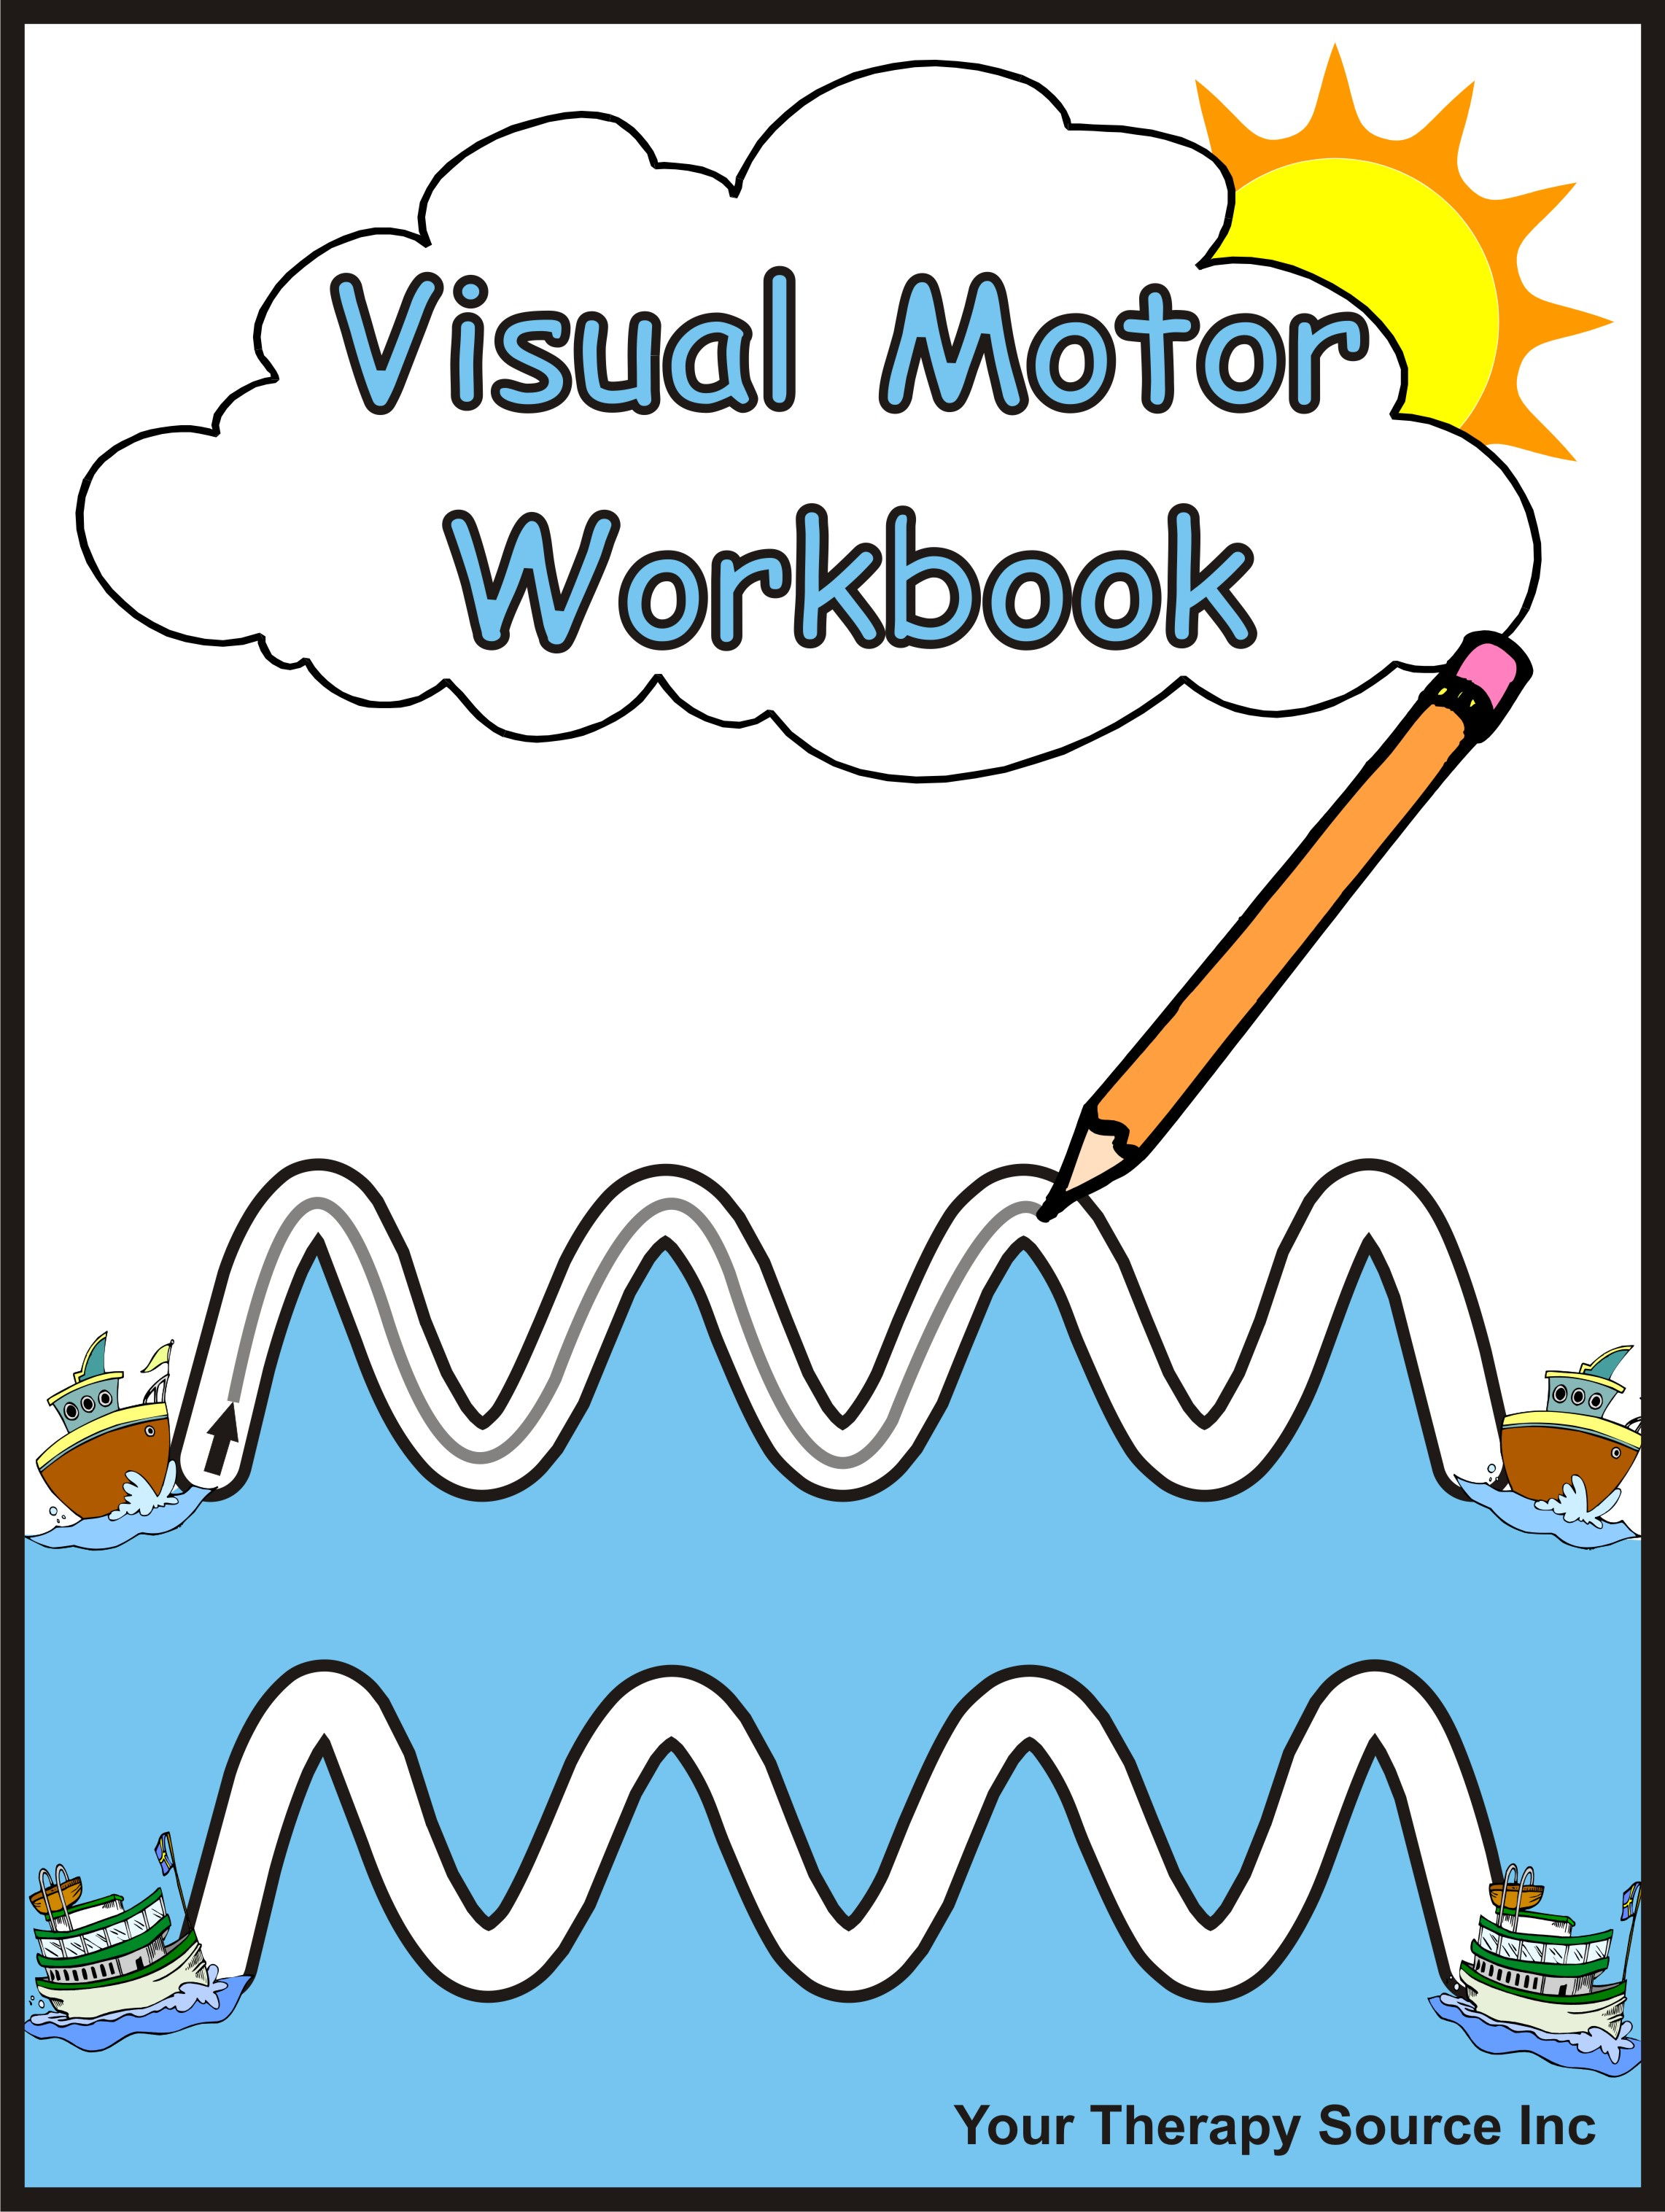 Visual Motor Workbook - Your Therapy Source